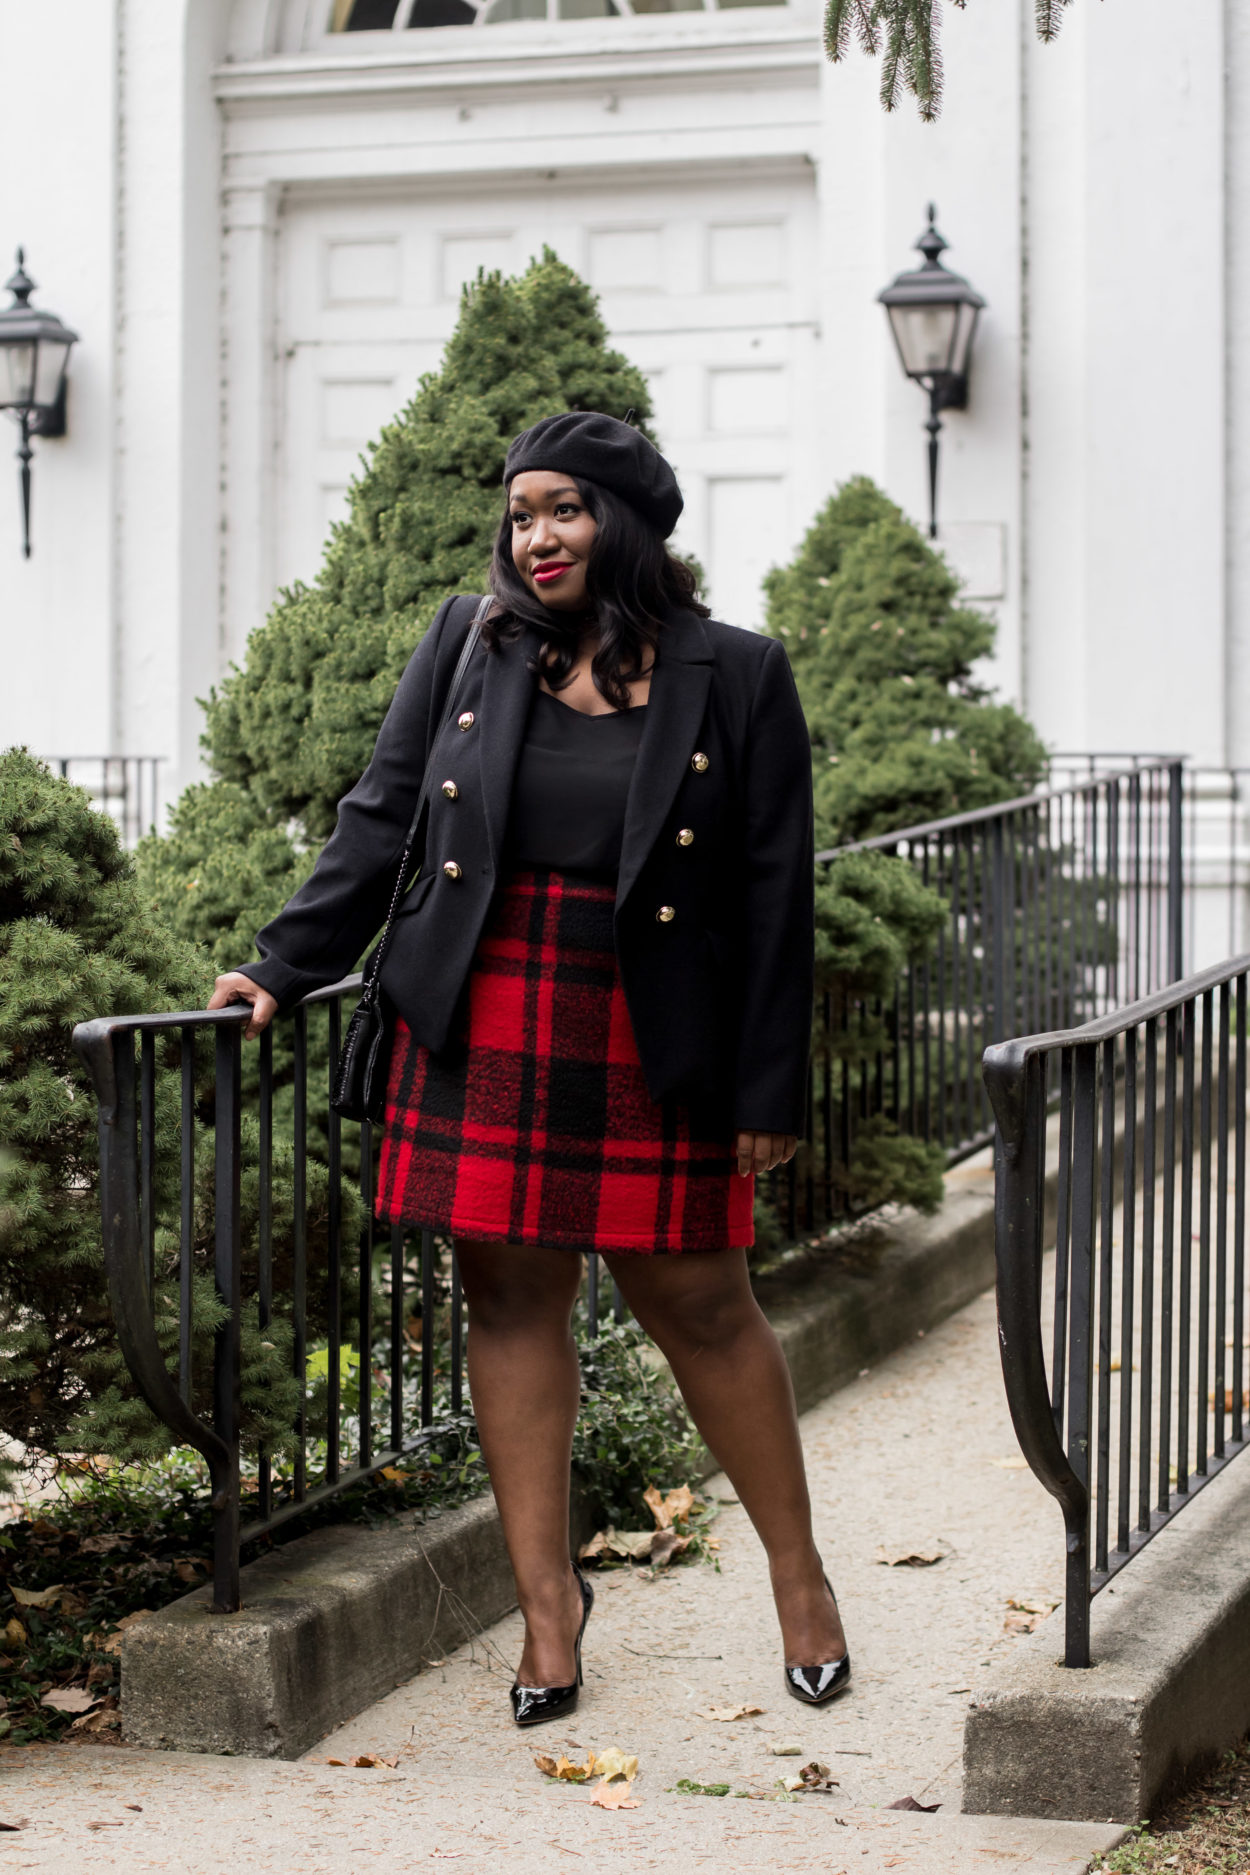 3ec99679bfdf2 red-plaid-skirt-holiday-outfit-idea-plus-size-fashion-blog - Shapely ...